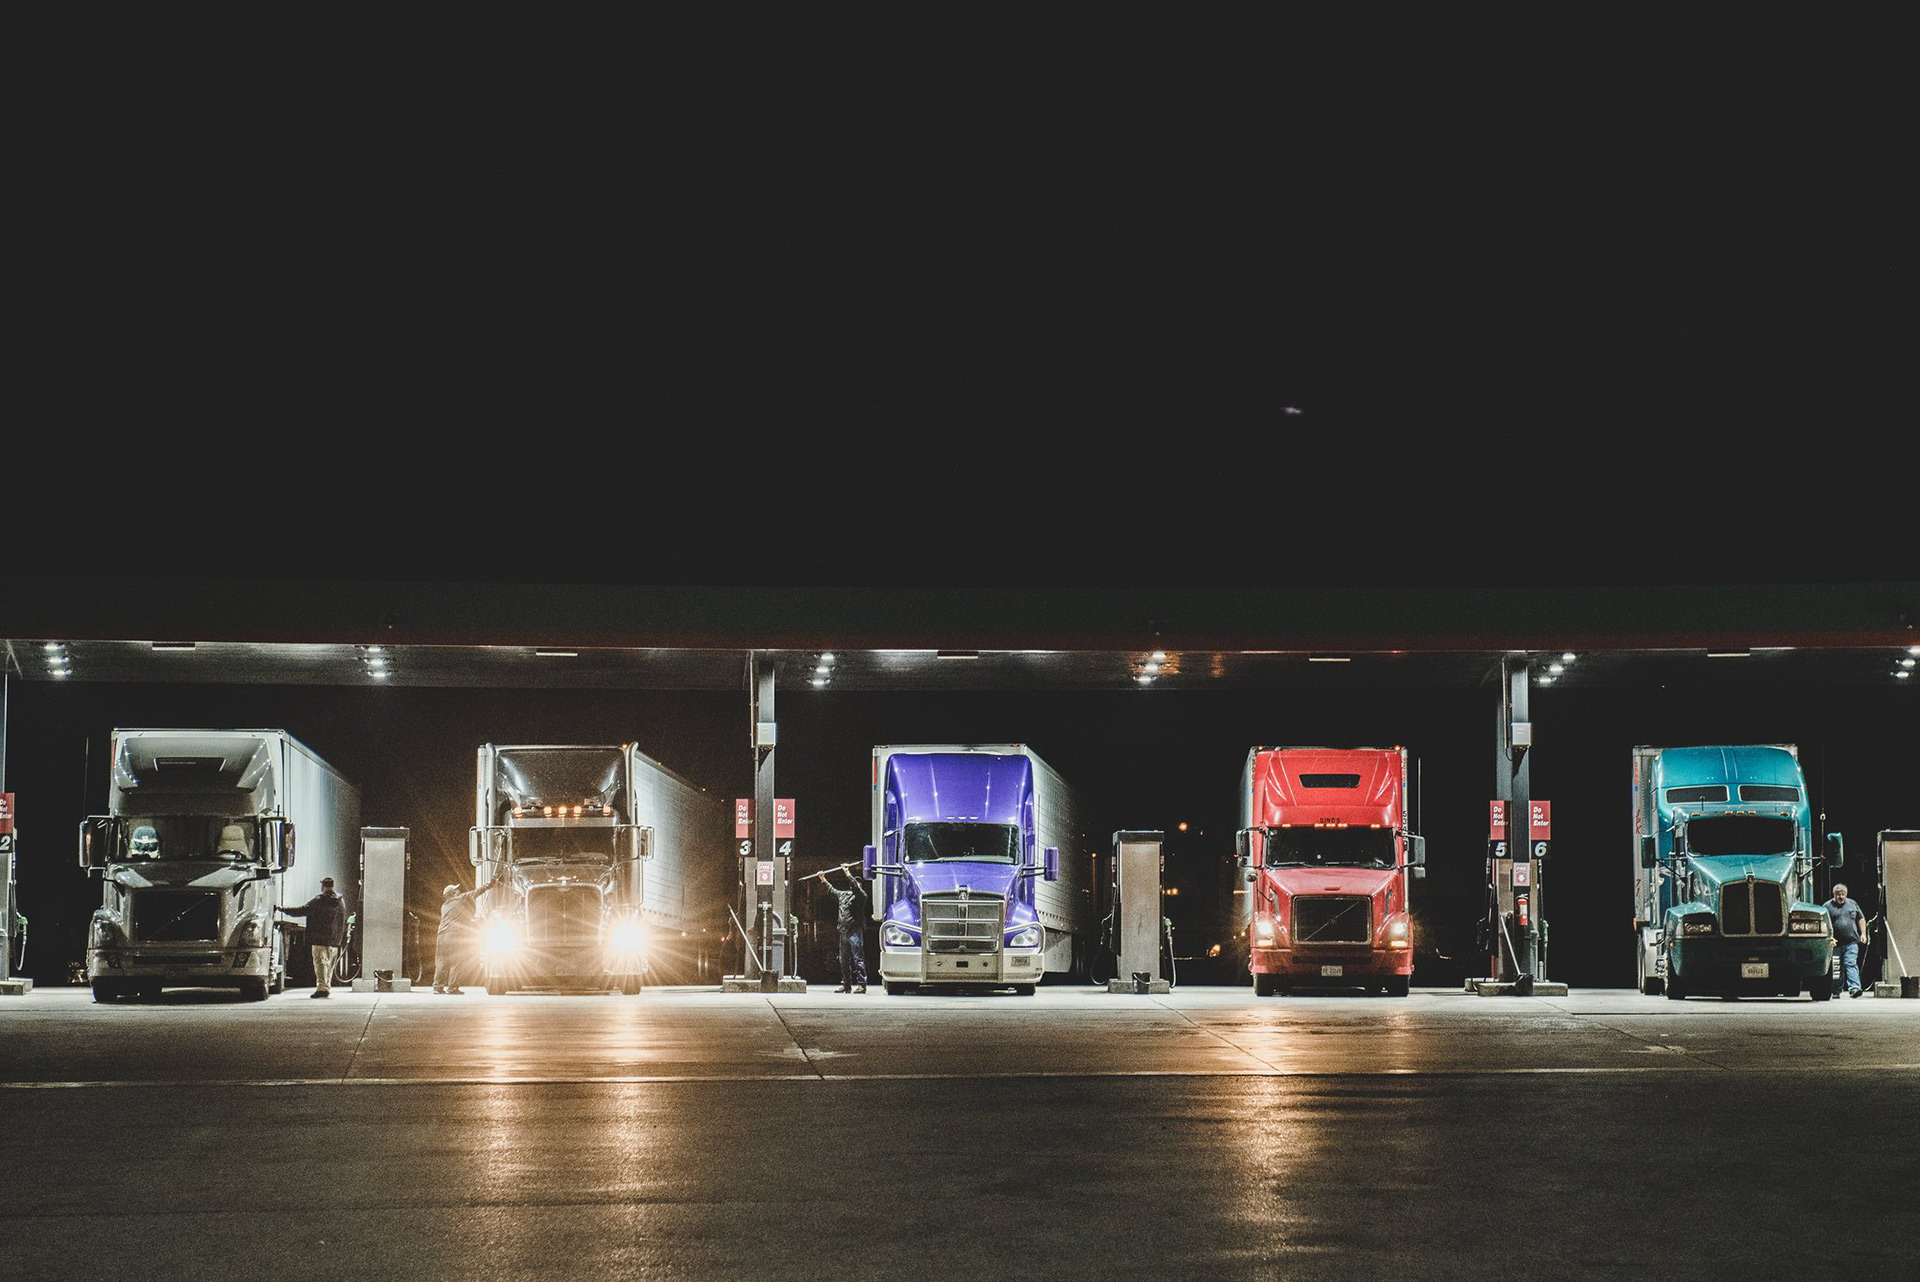 A row of trucks at a gas station. One truck has its headlights on.